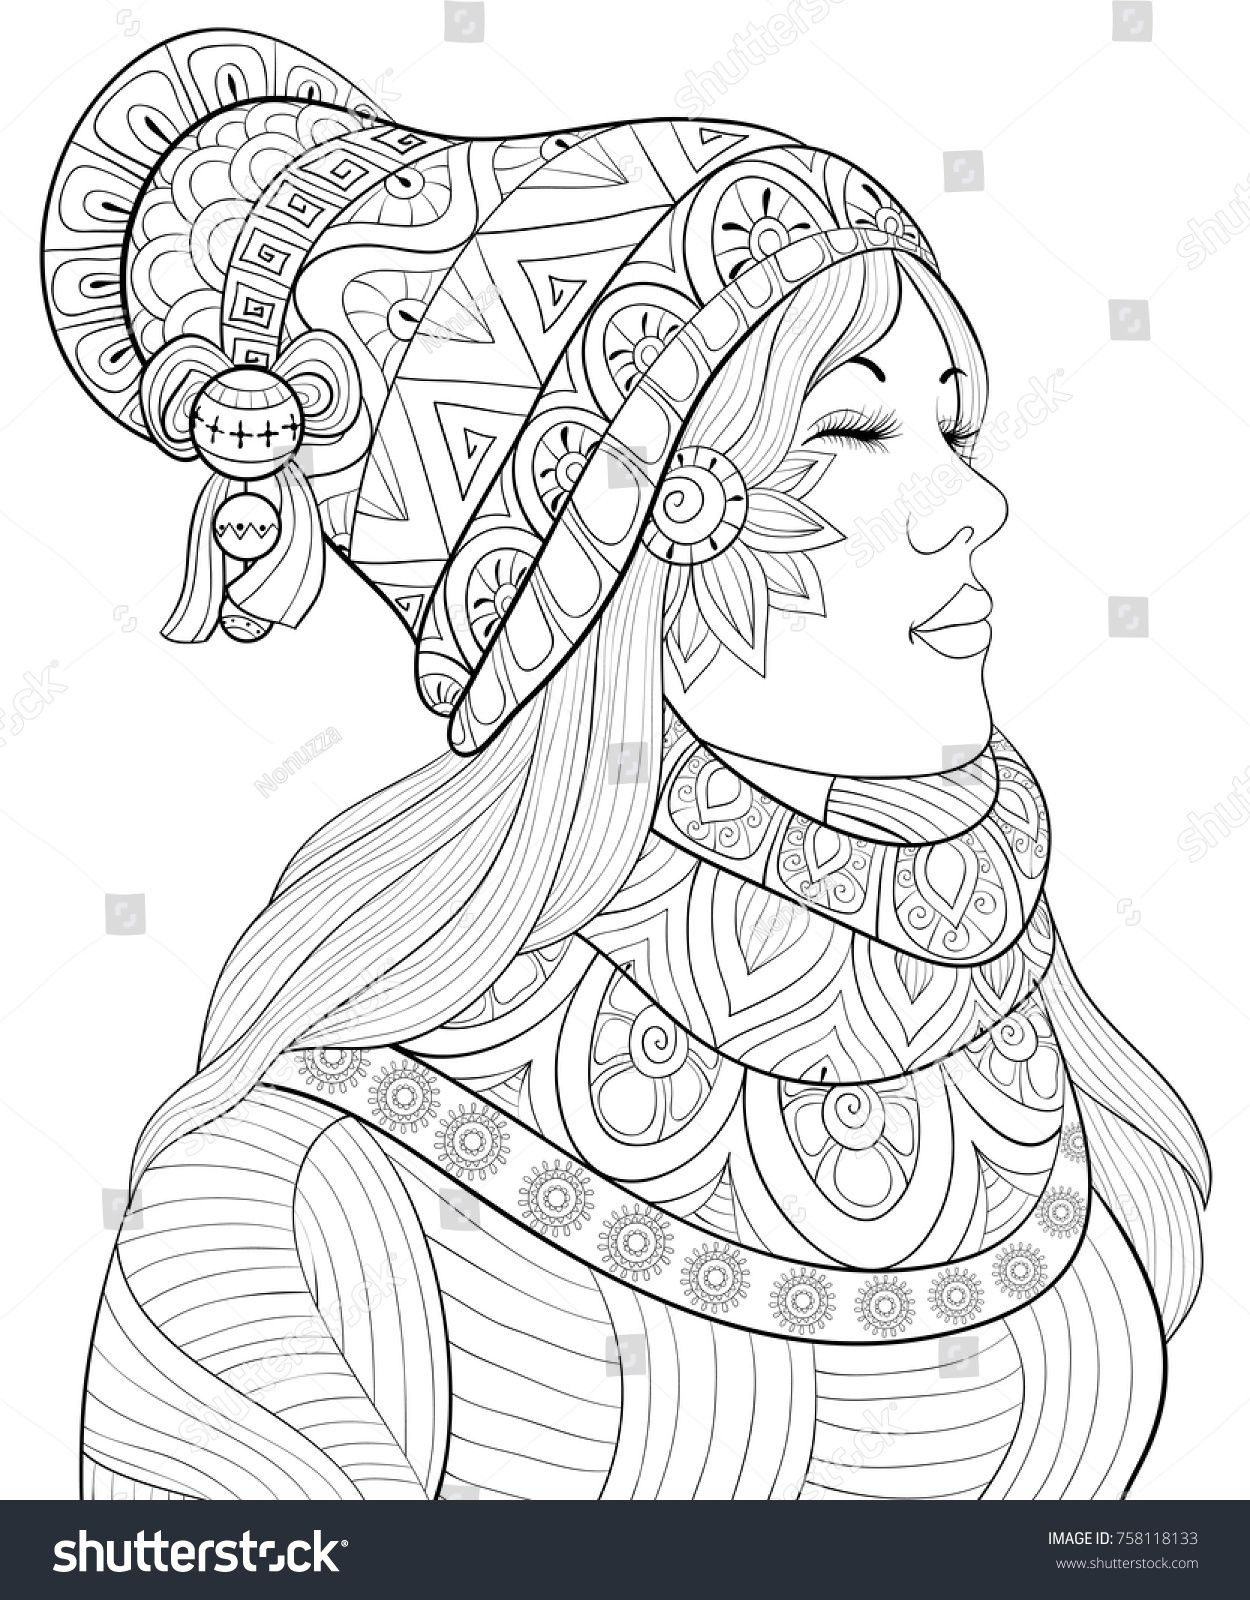 Fille Zen Adult Coloring Page Book A Cute Girl Wearing Scarf And Cap